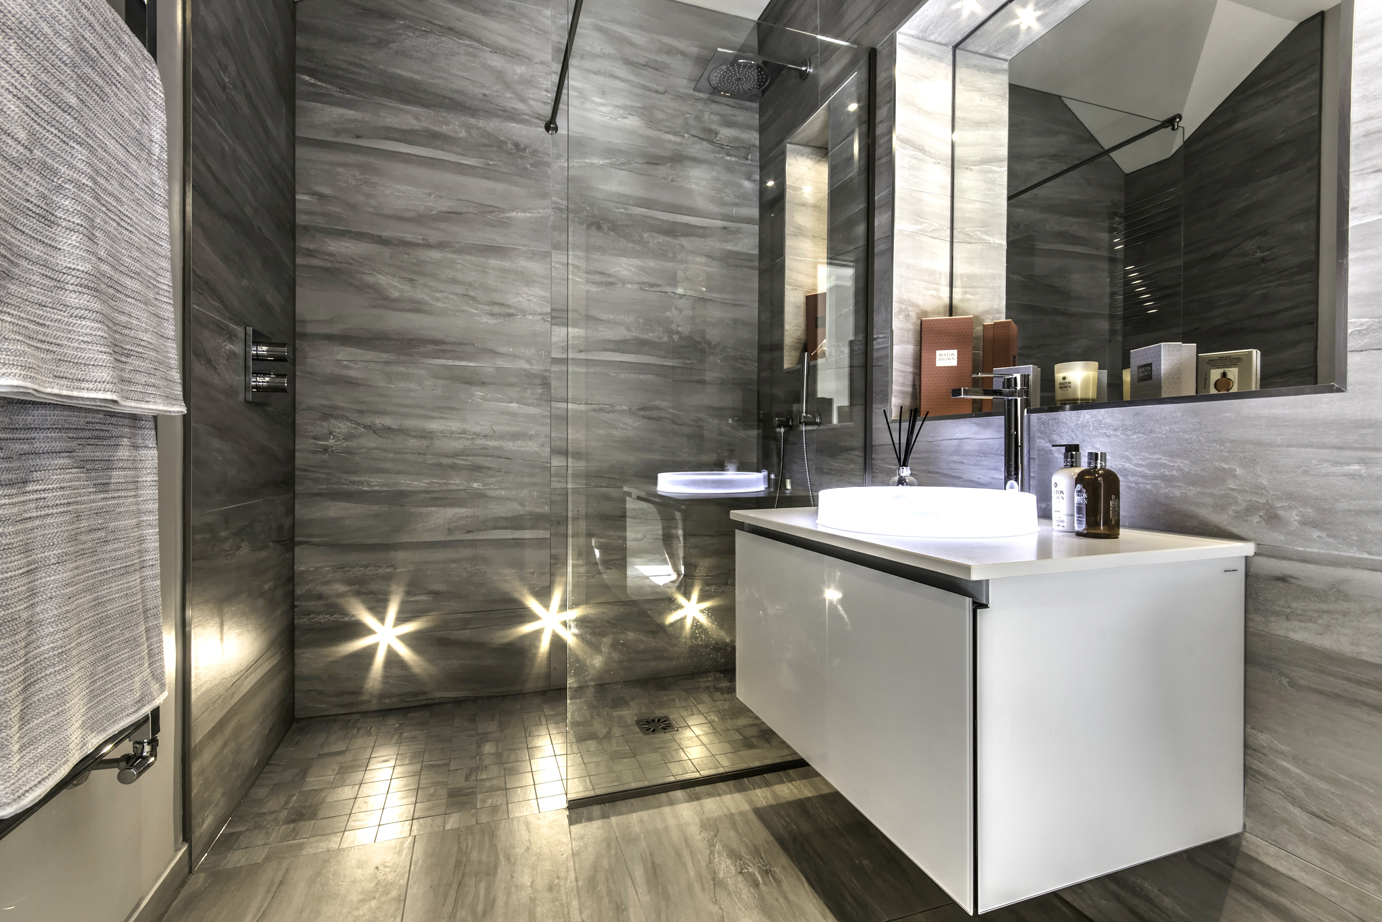 High end bathroom design for luxury new build apartments concept design - Luxury bathroom ...